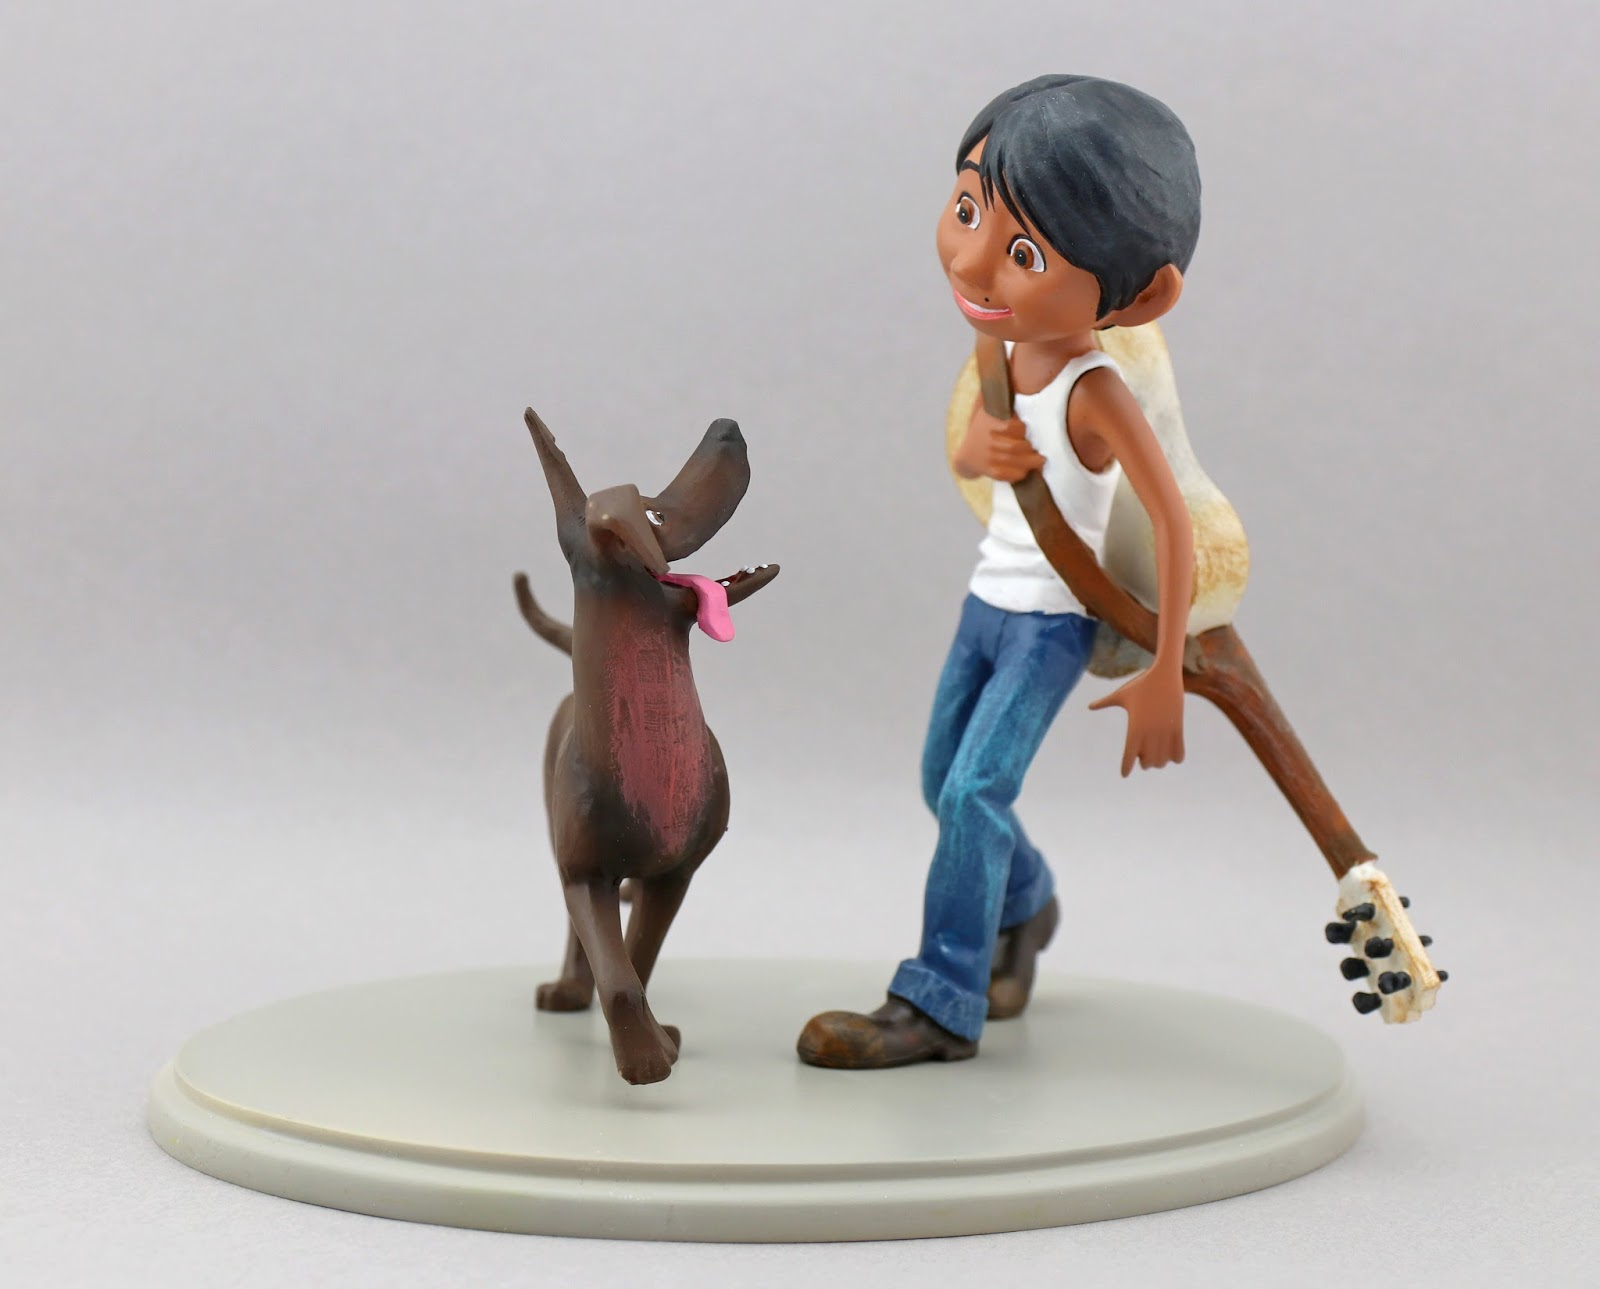 coco miguel and dante statue figure enesco